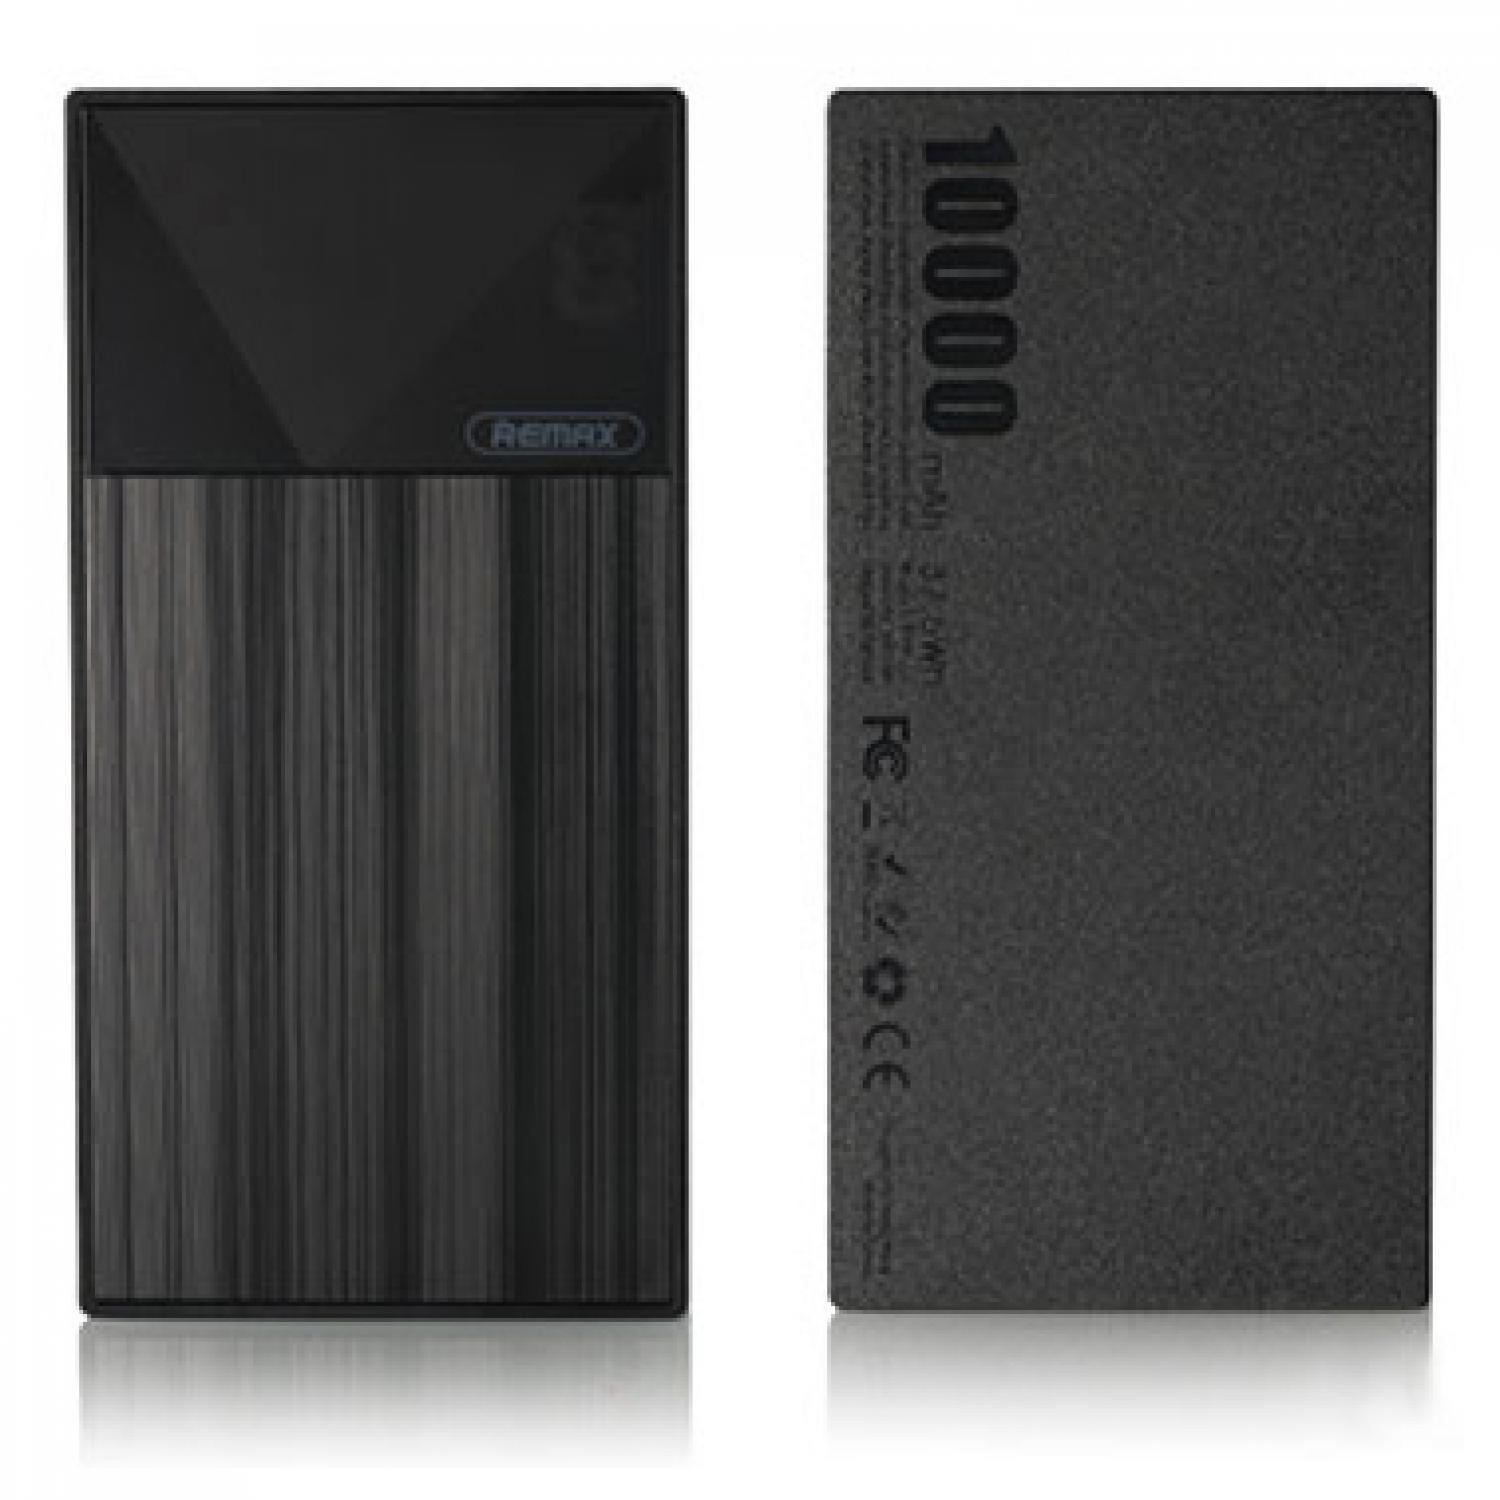 Remax Thoway Series Power Bank 10000mah - RPP-55